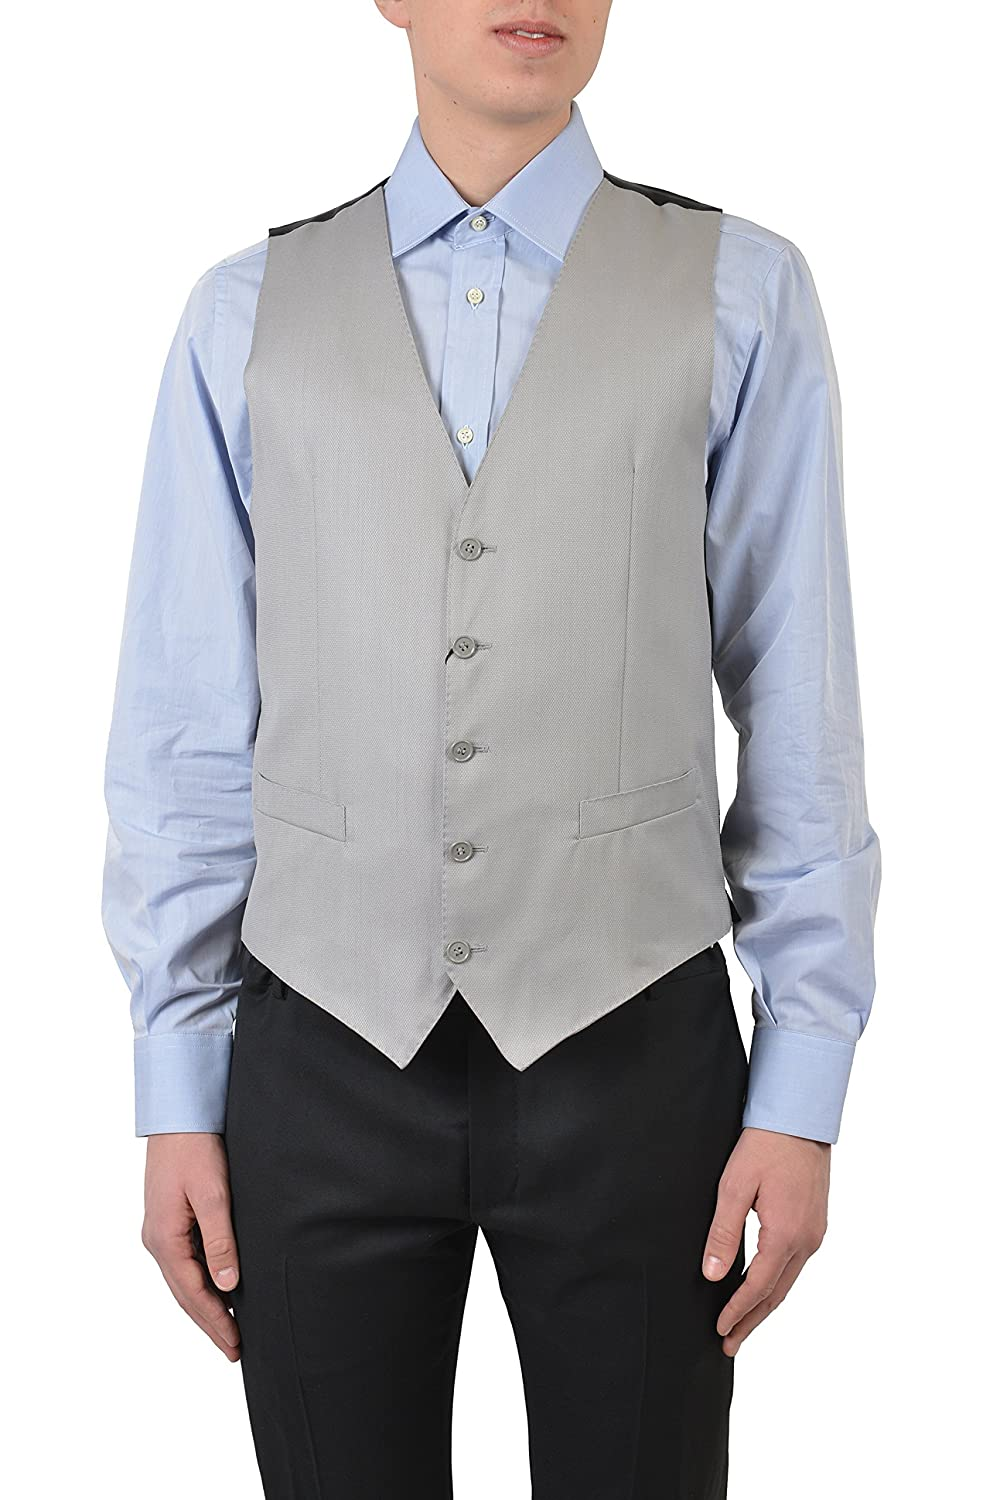 Dolce & Gabbana Wool Silk Gray Men's Vest US 38 IT 48 V-459